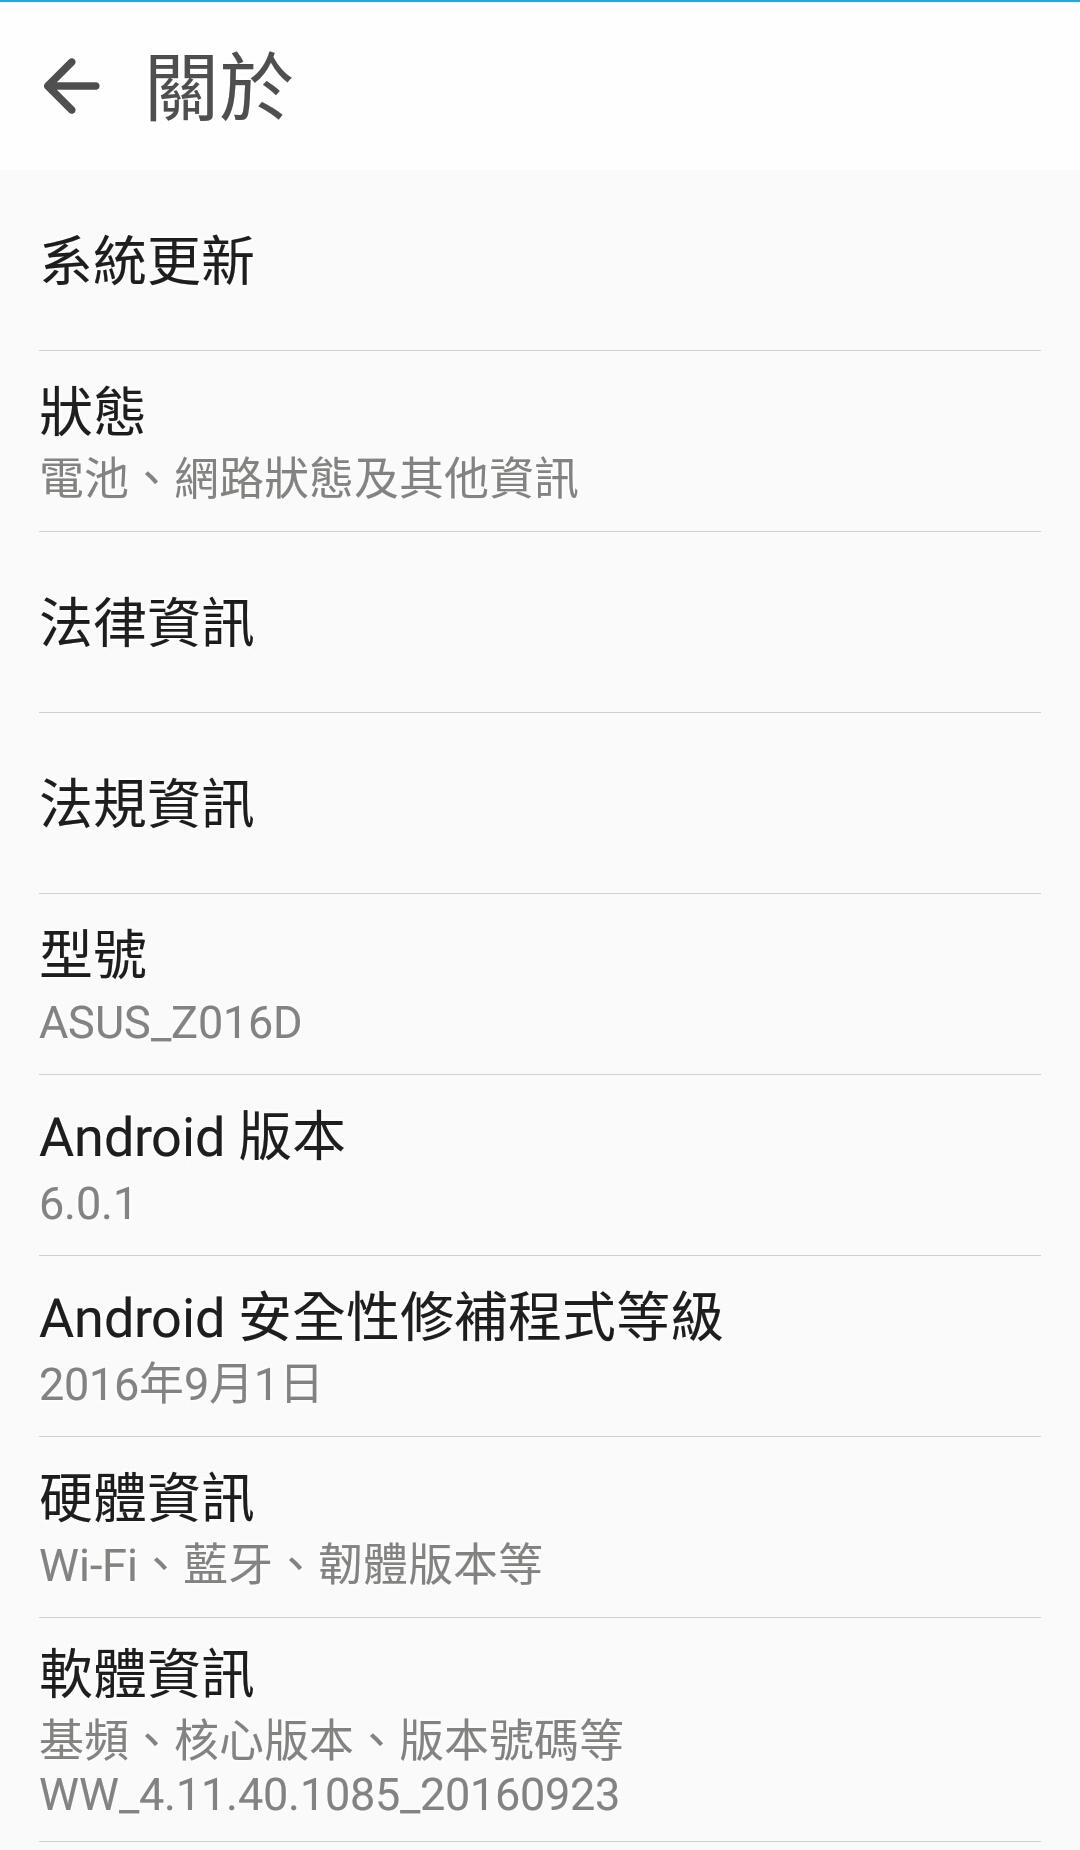 質感再升級的 Zenfone 3 冰河銀 Deluxe 6GB/64G 開箱 - XFastest - Screenshot_20161006-090525.jpg